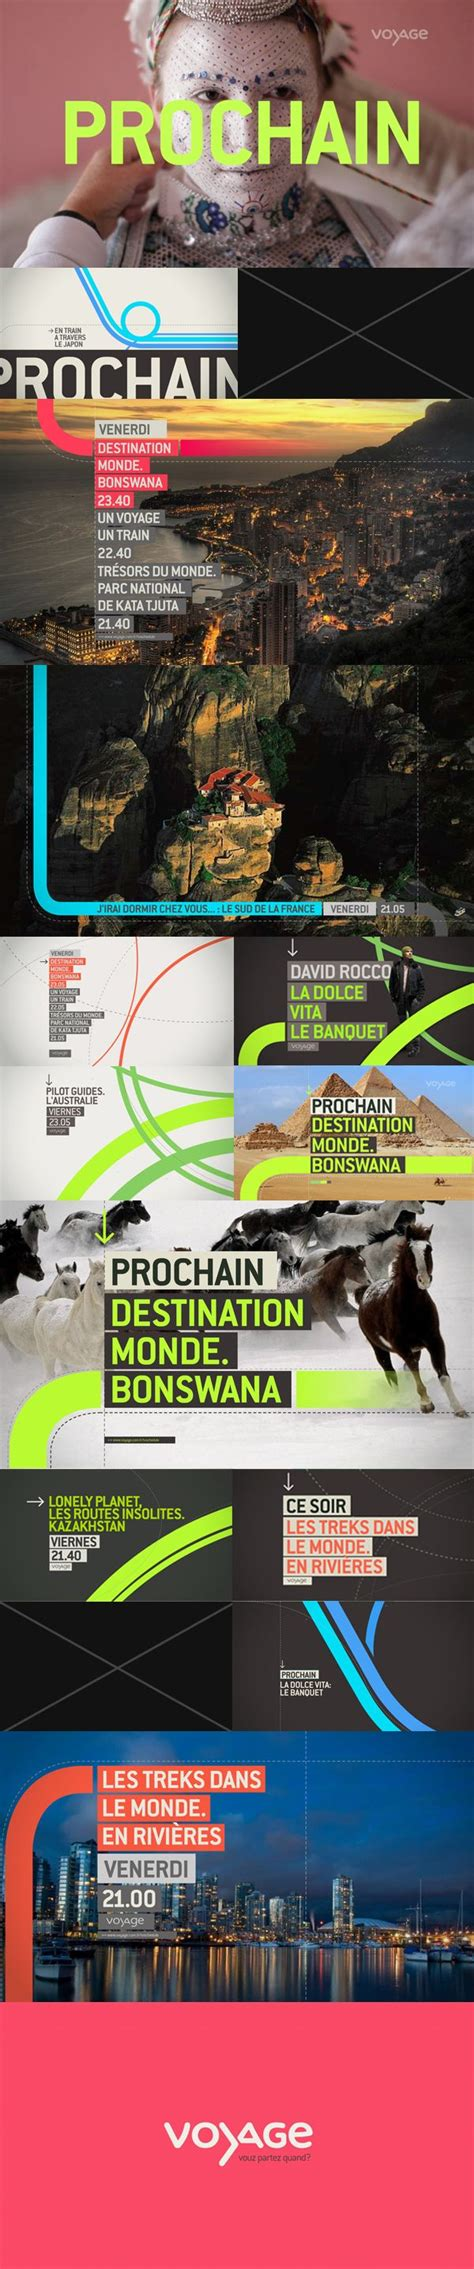 motion design proposal 1000 images about motion graphics styleframe